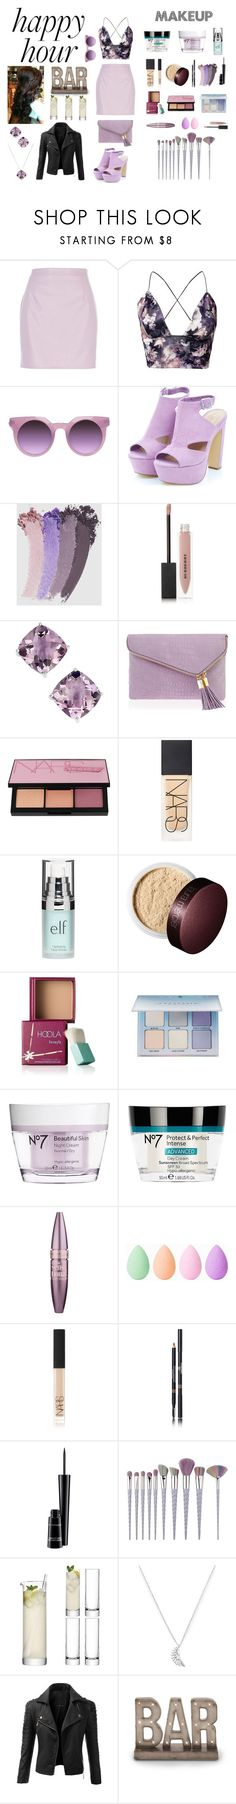 """""""Contest: Happy Hour (3)"""" by blonde-blooded ❤ liked on Polyvore featuring River Island, Oneness, Gucci, Burberry, Henri Bendel, NARS Cosmetics, Old Navy, Benefit, Anastasia Beverly Hills and Boots No7"""